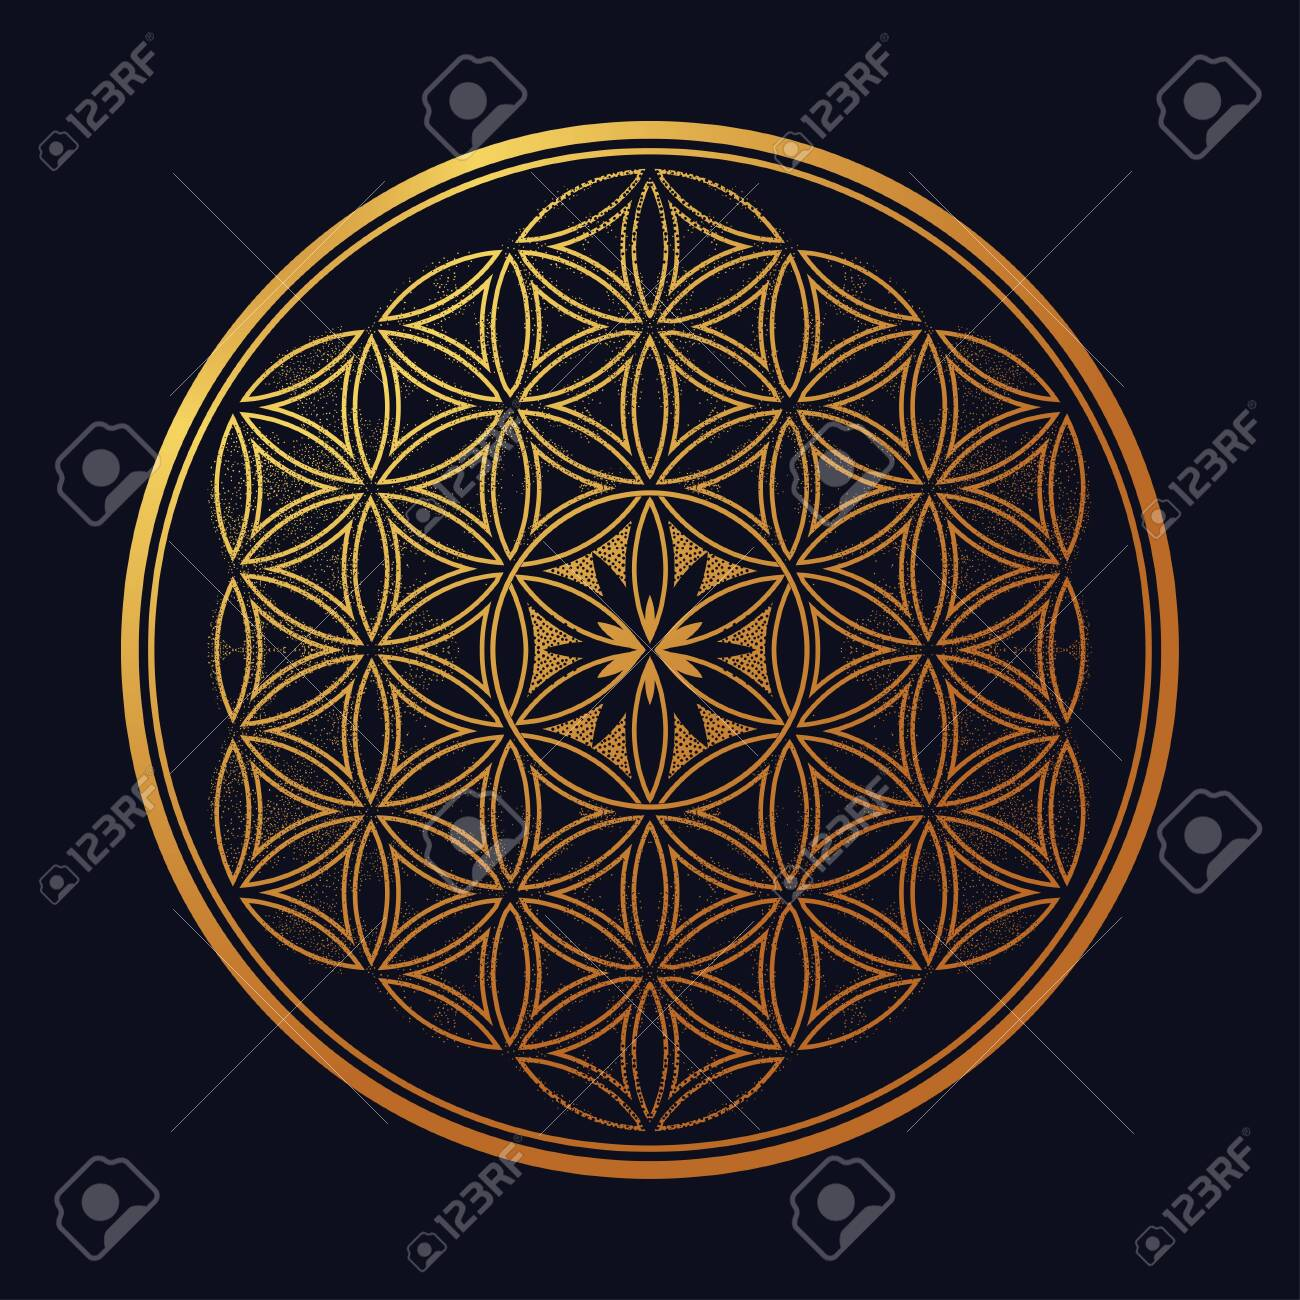 Flower of Life - intersecting circles forming. - 134792419